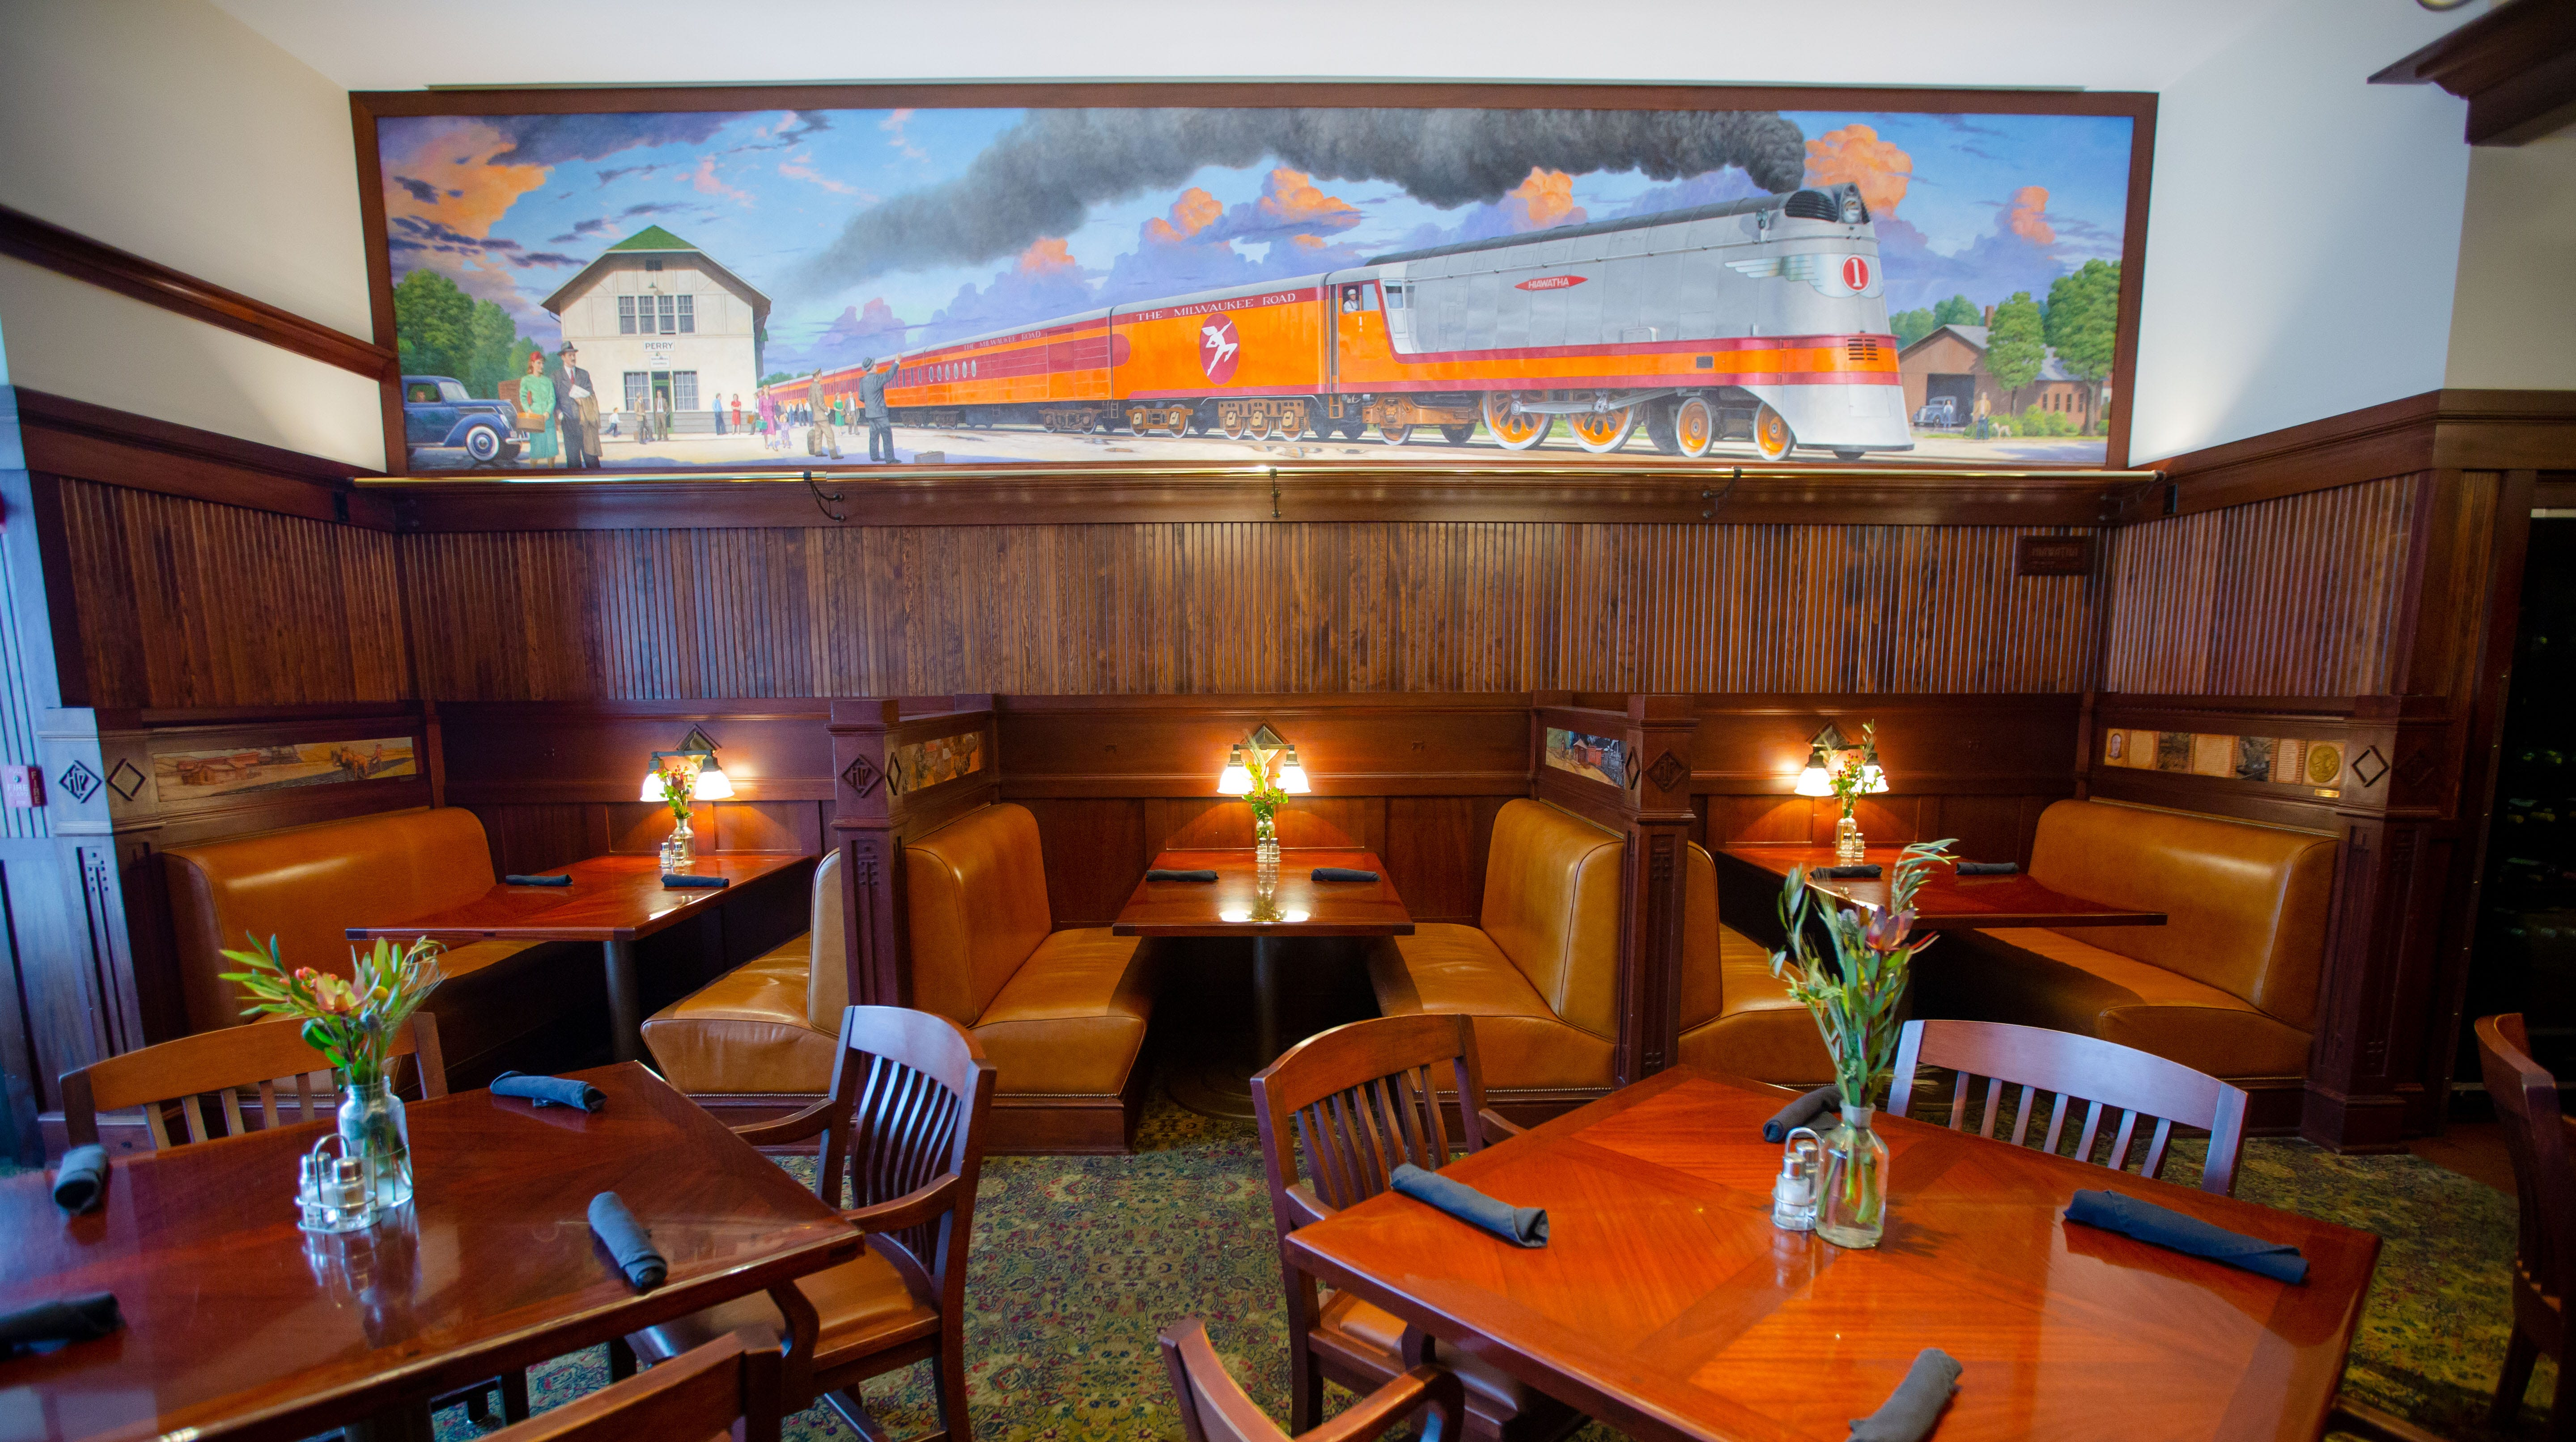 Harvey's restaurant moves from Redfield to the Hotel Pattee in Perry with comfort food